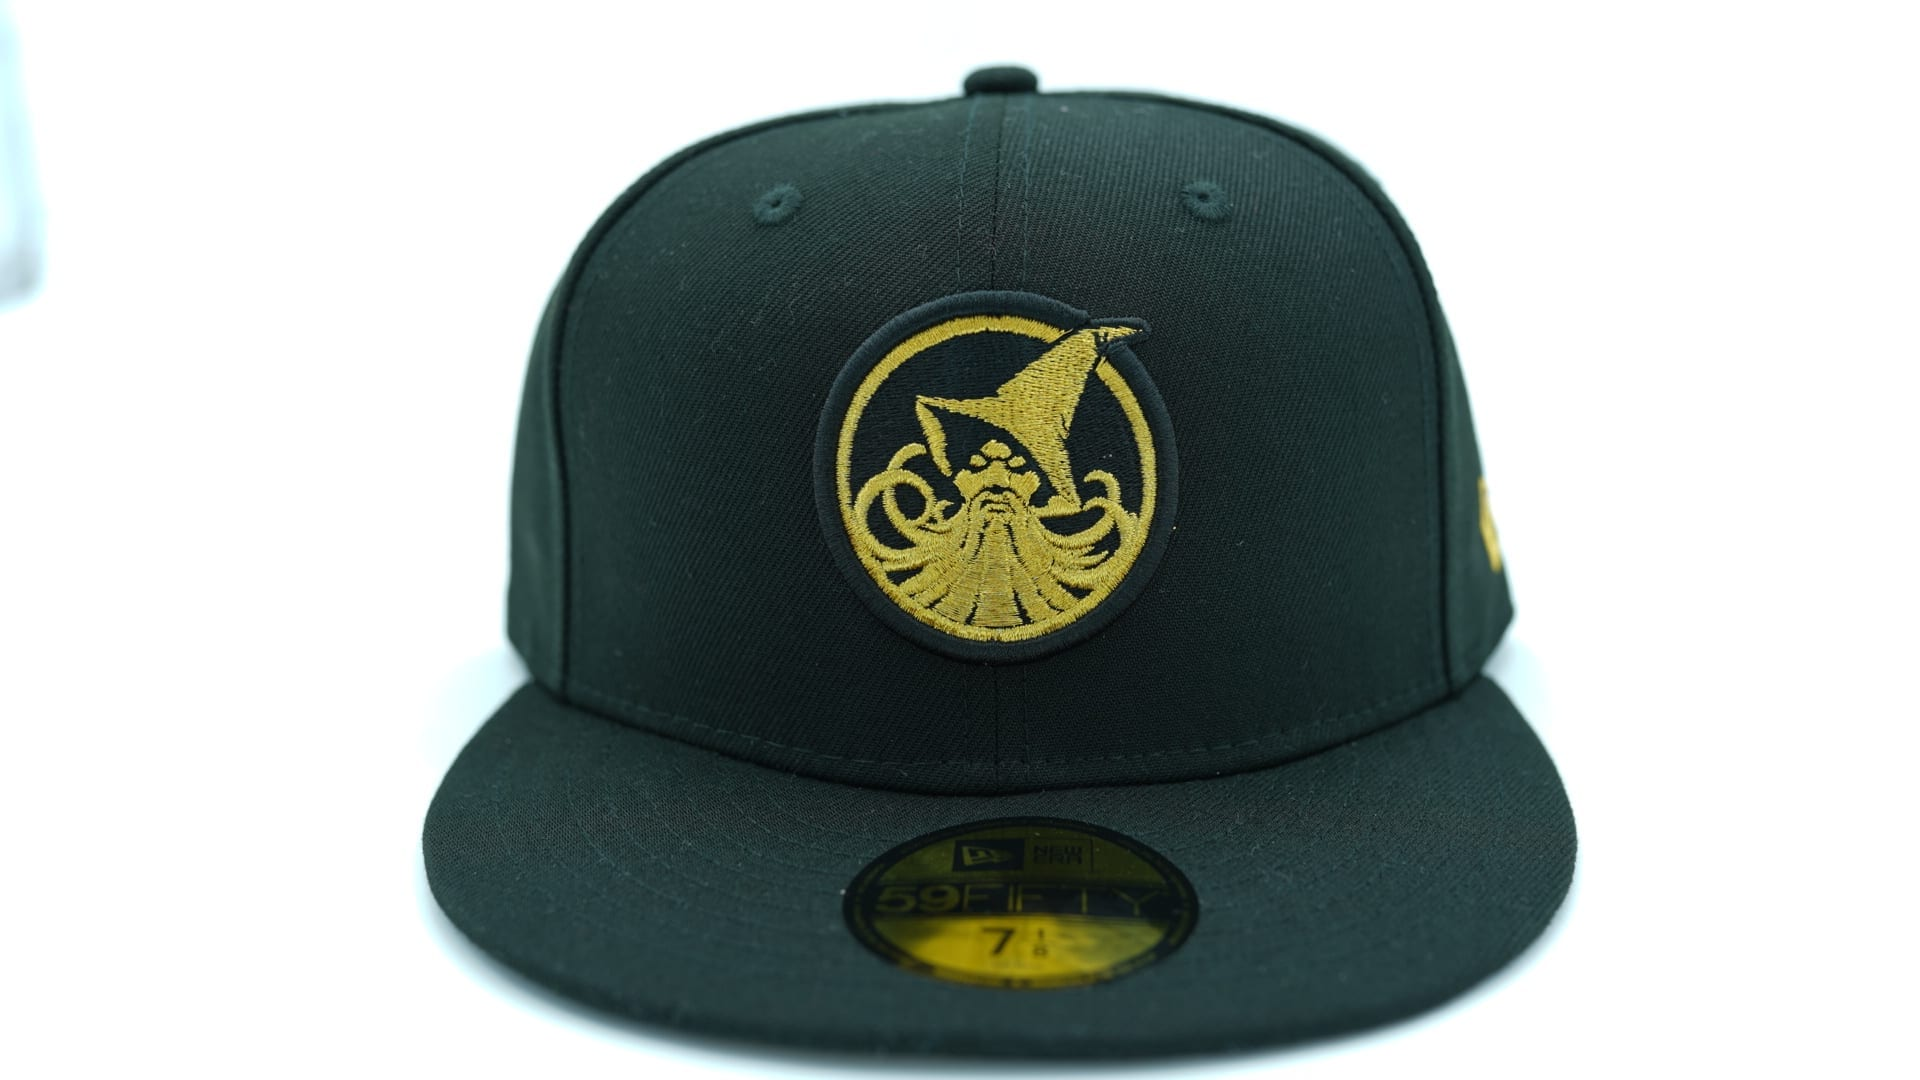 Golden State Warriors Playoff Side Patch Two Tone 59Fifty Fitted Cap by NBA x New Era